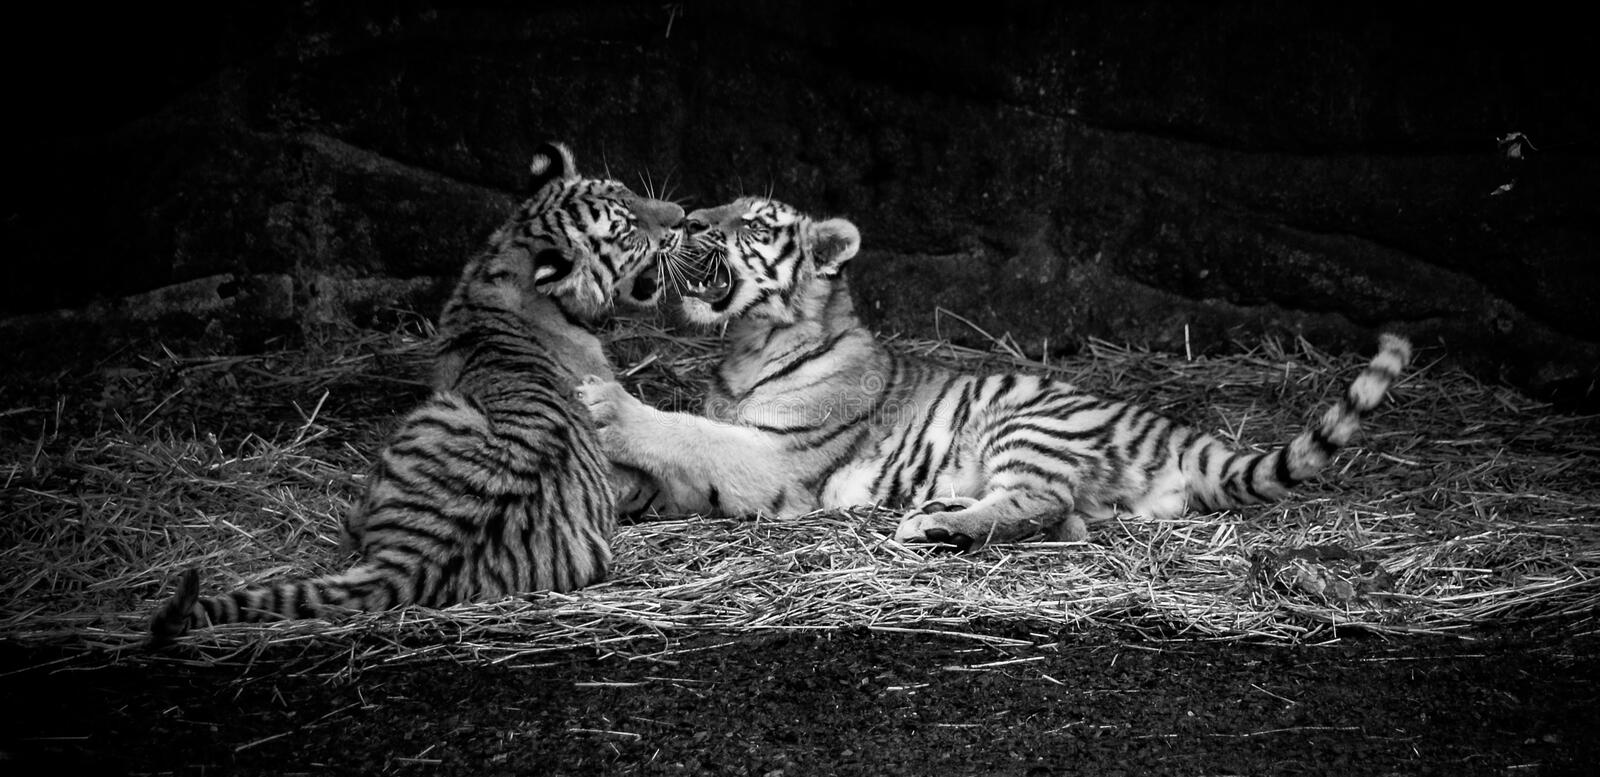 Tiger Cubs. Siberian Amur tiger cubs play fighting in black and white royalty free stock photo